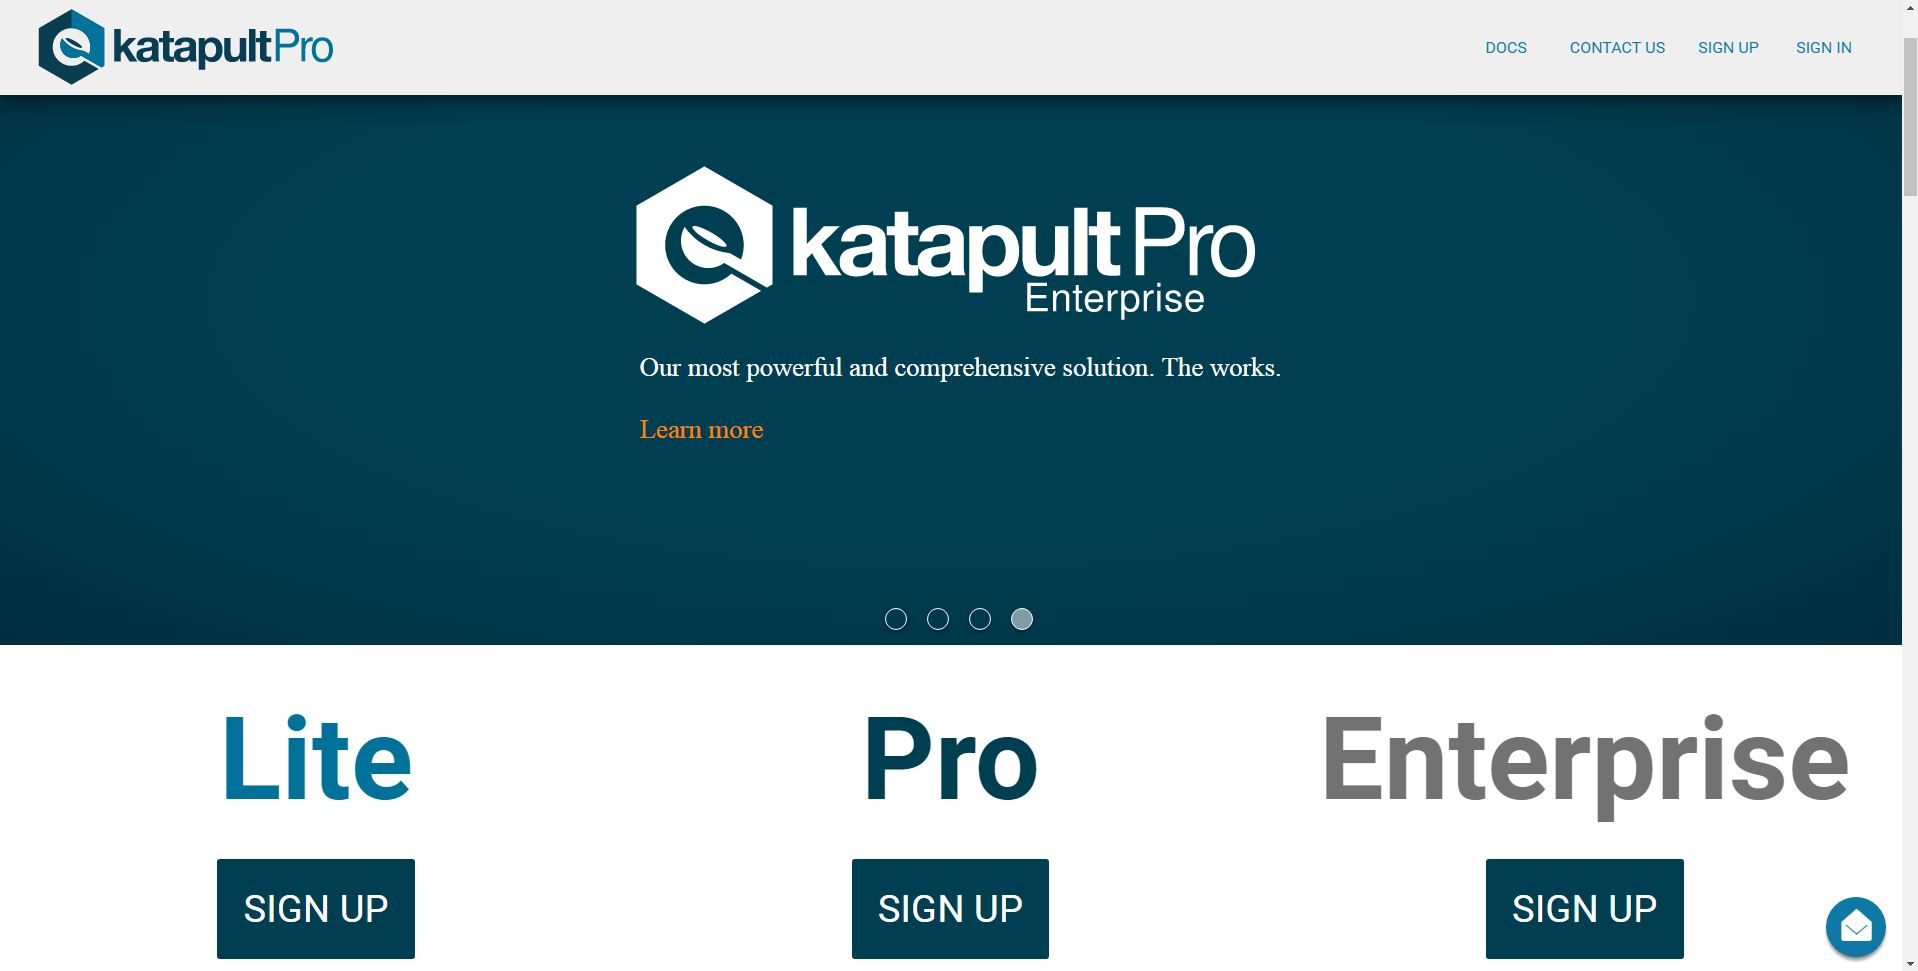 image displaying the various katapultPro subscriptions